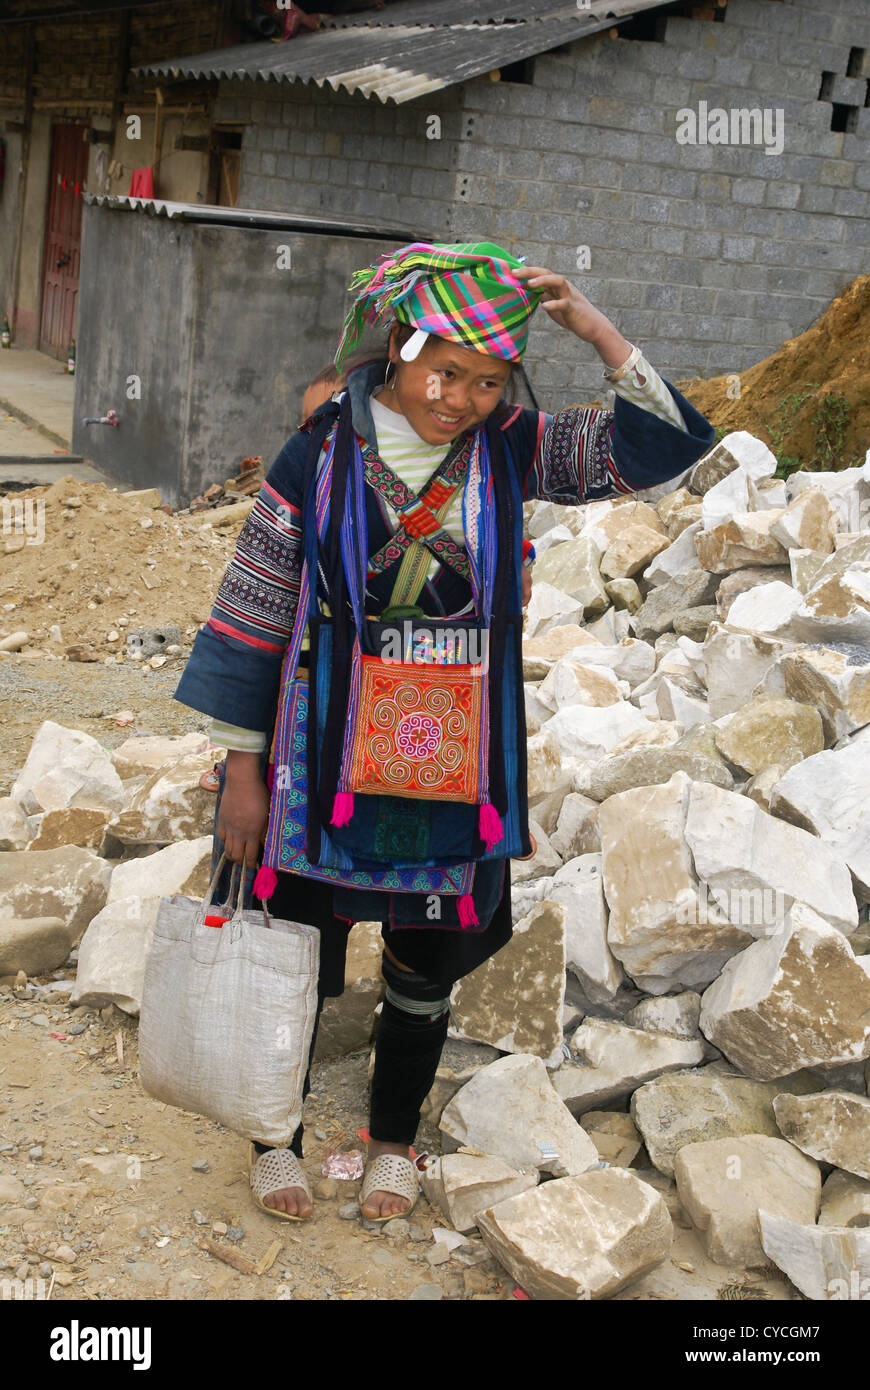 Vietnam, Sapa Market, Black Hmong woman in traditional dress - Stock Image